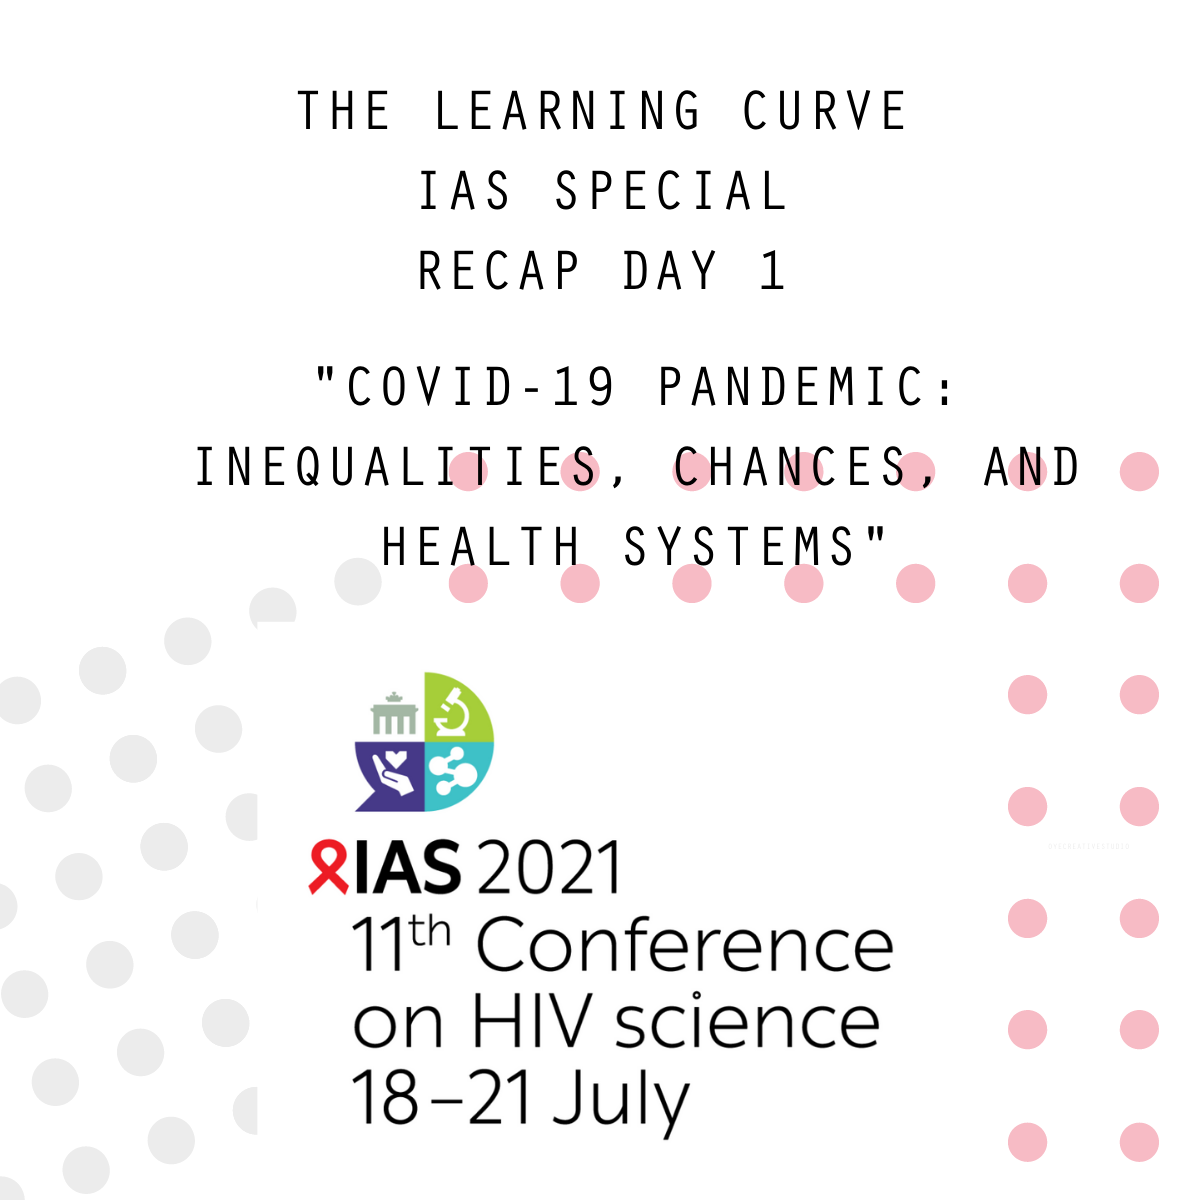 The Learning Curve - IAS Special Day 1